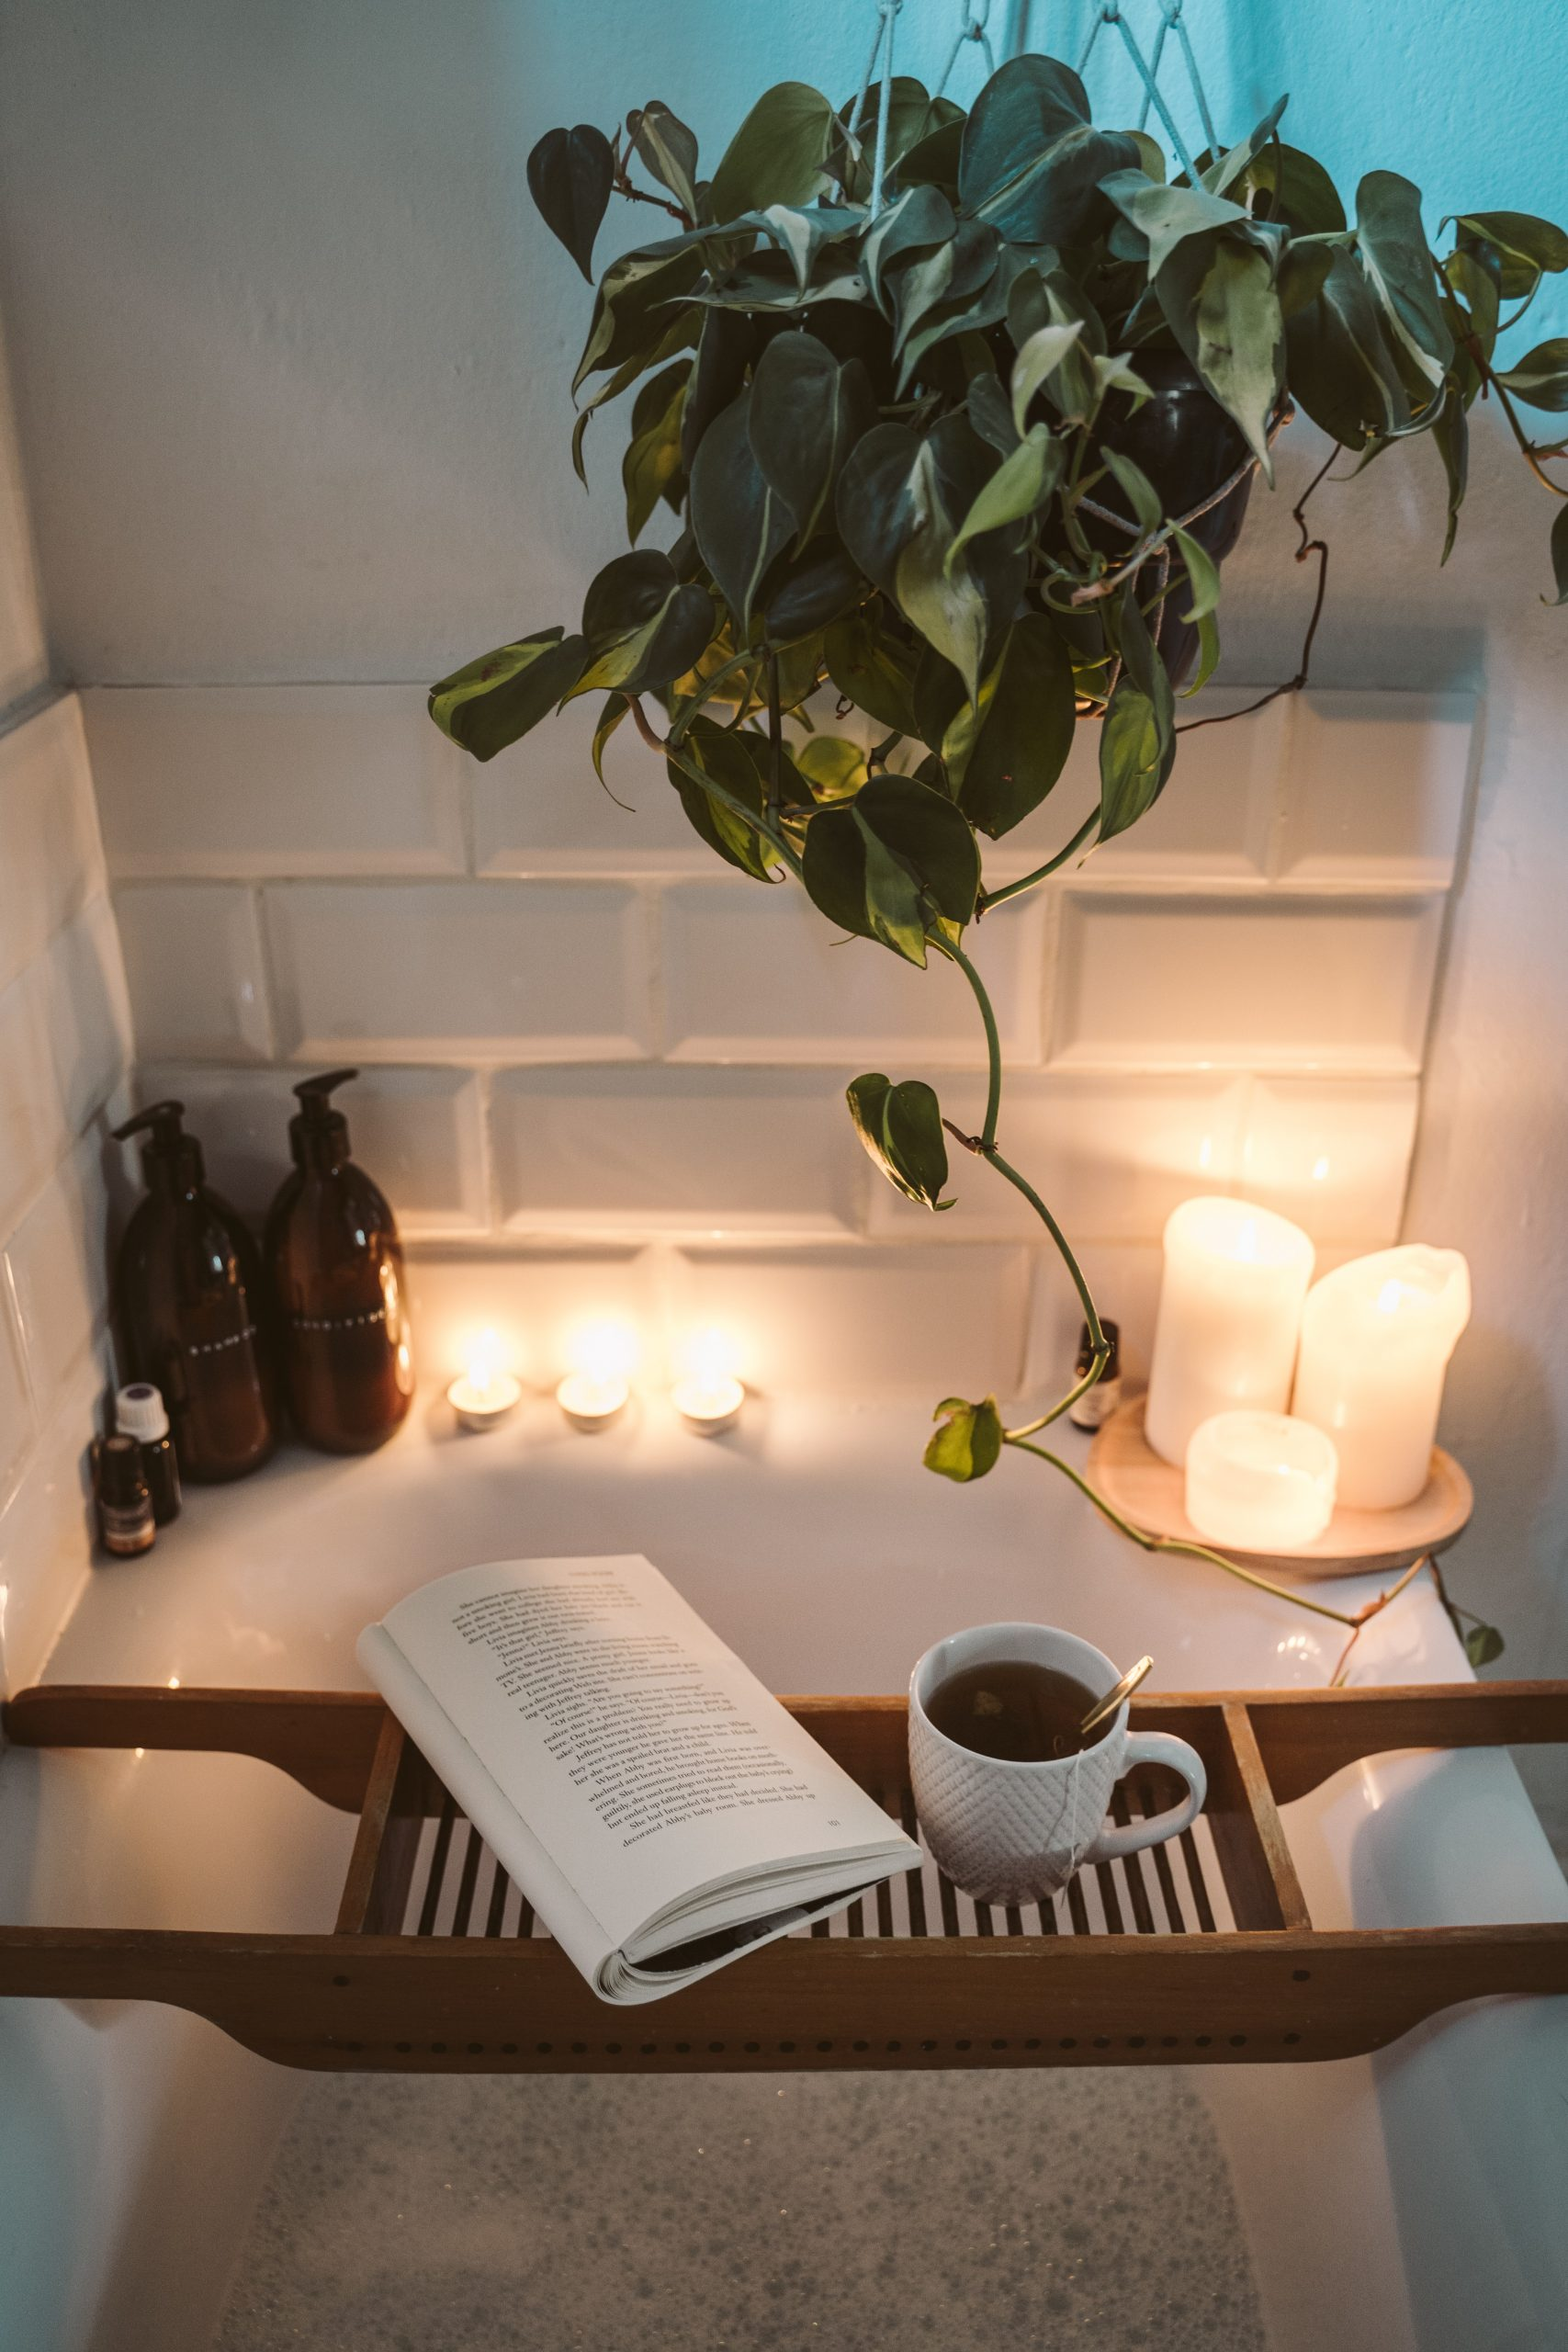 Implementing Self-Care into your Routine